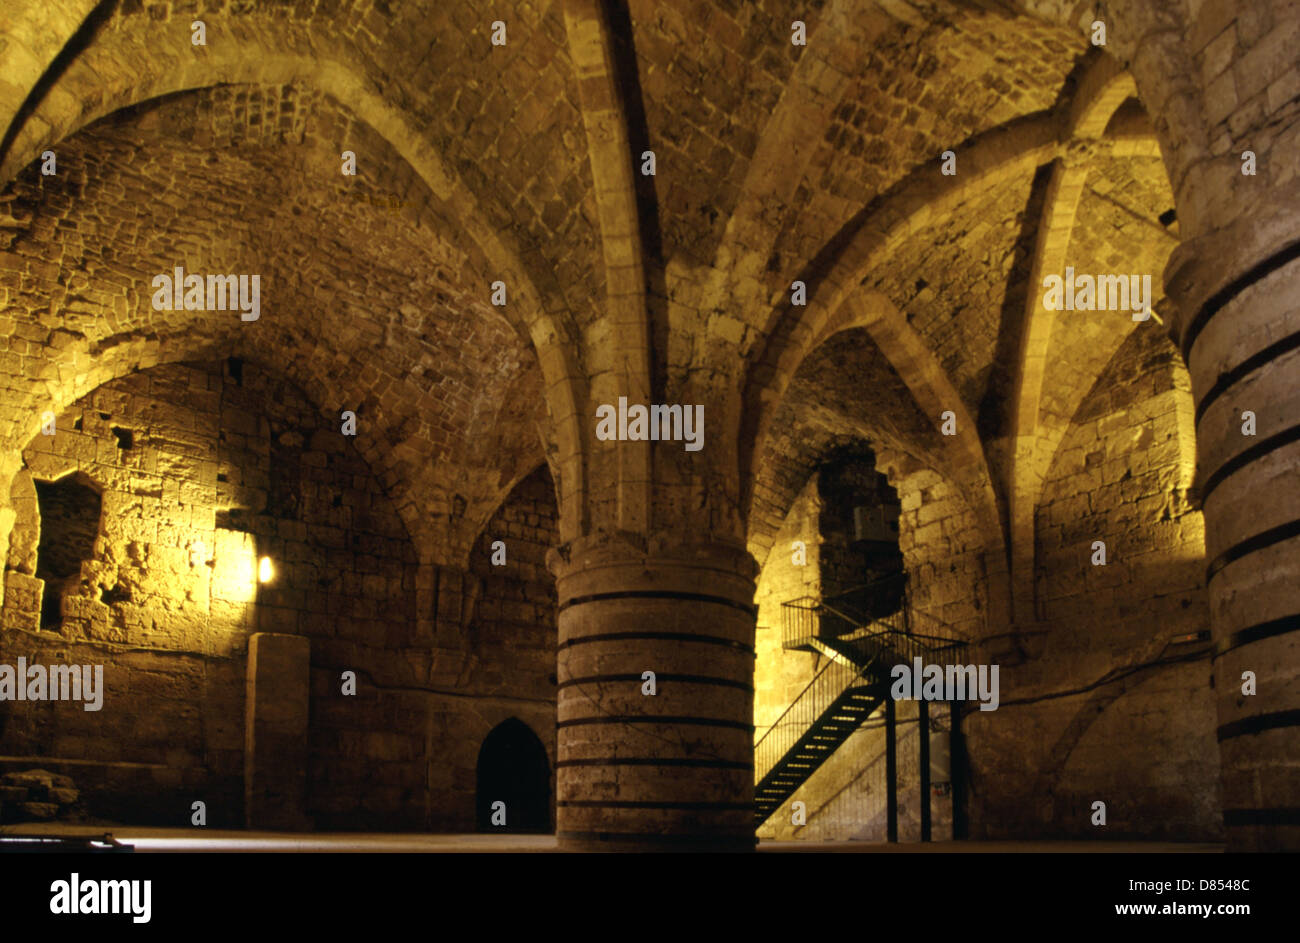 The Knights' Halls of the Subterranean Crusader citadel in Acre or Akko Northern  Israel - Stock Image